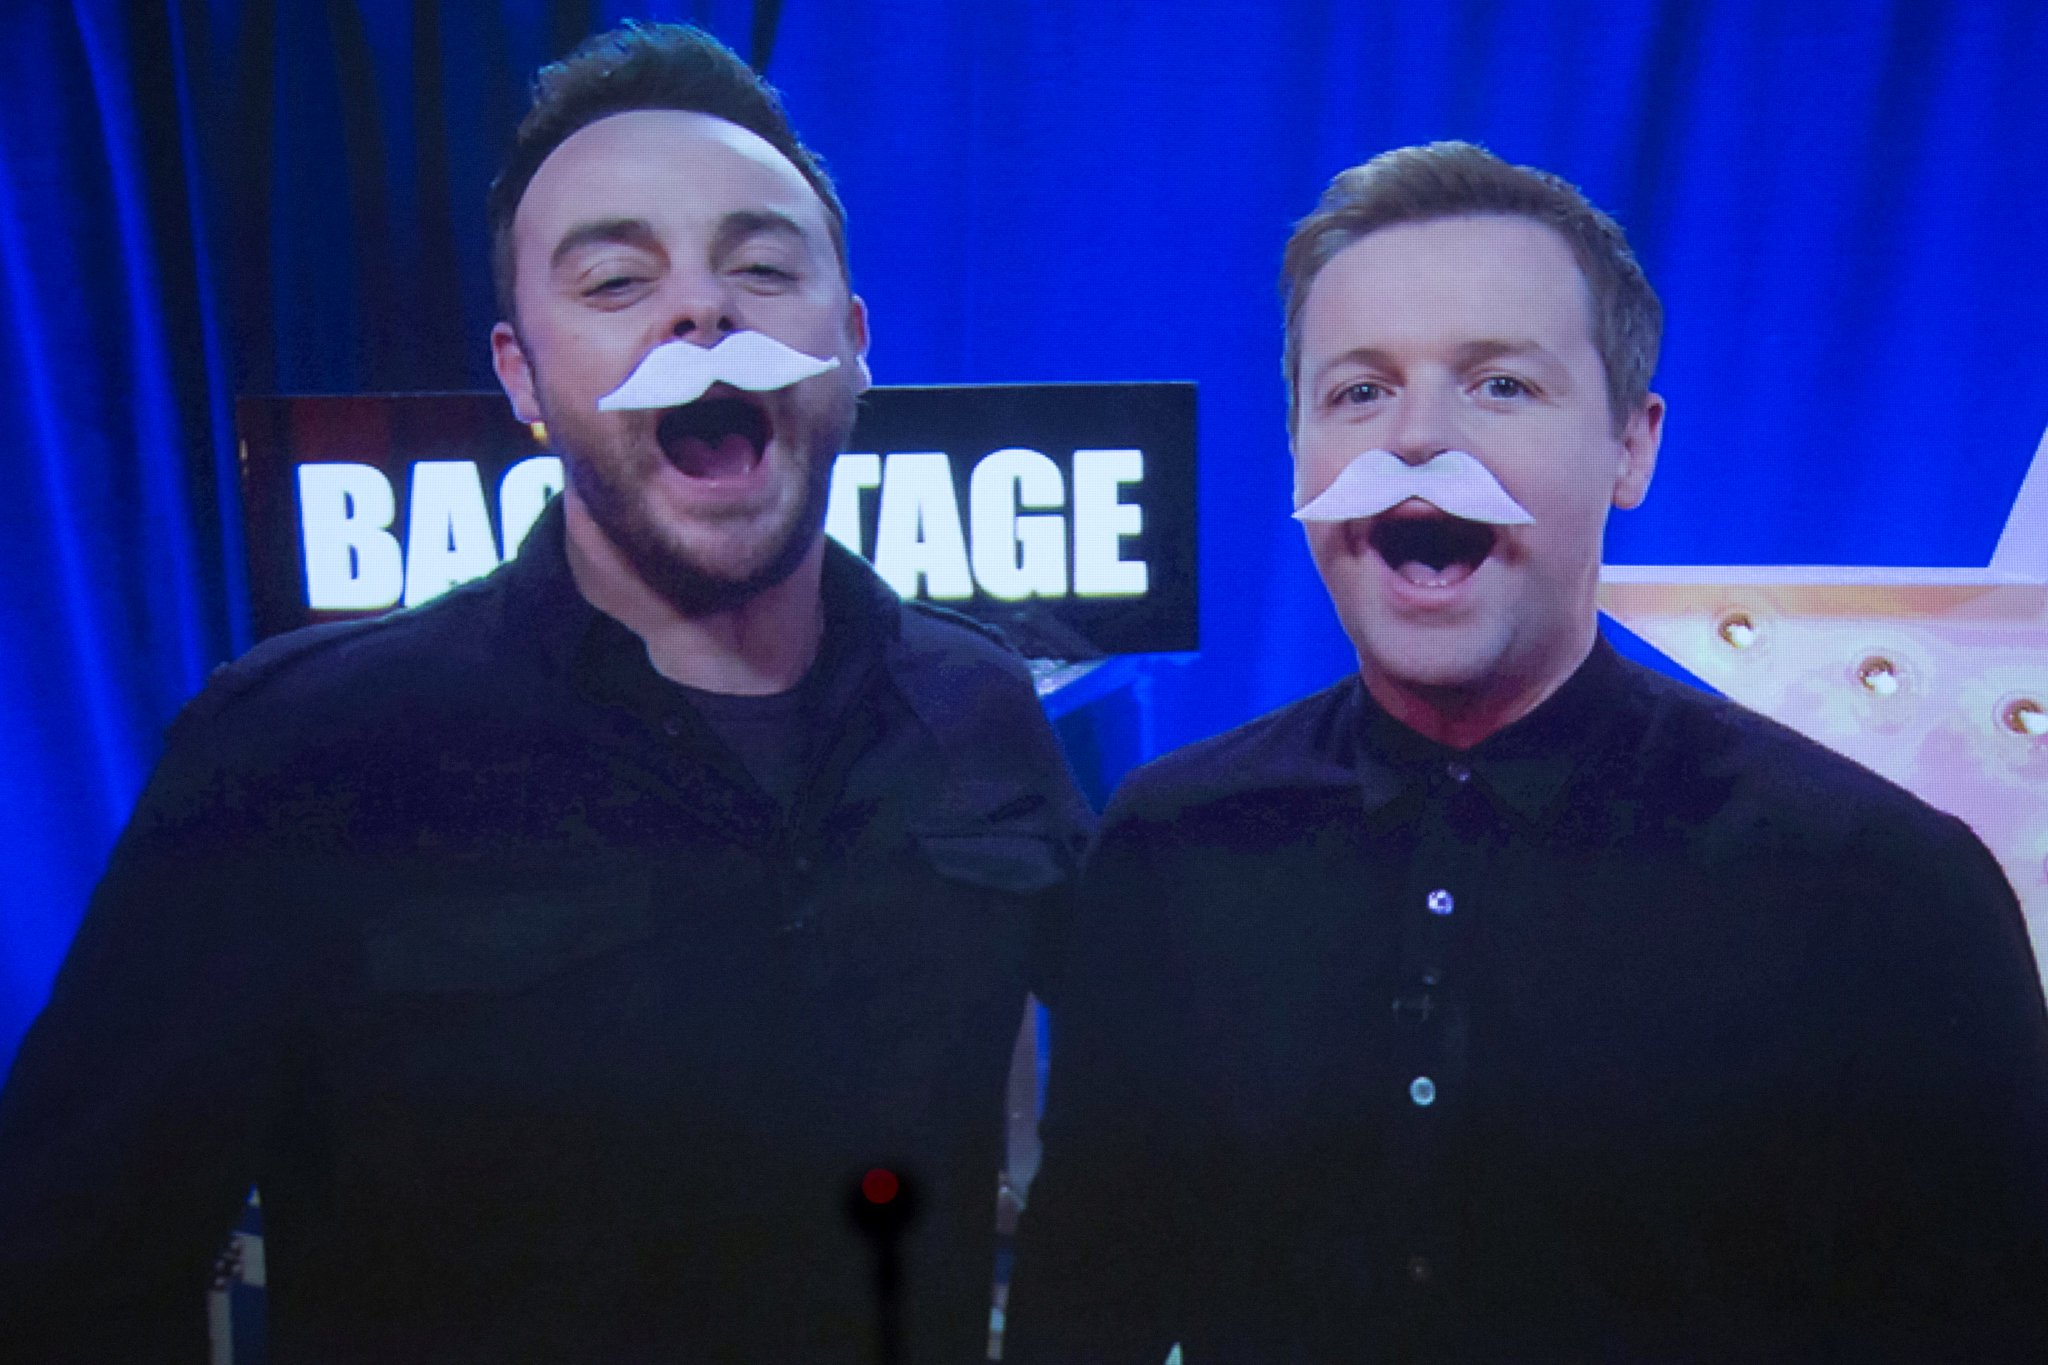 RT @CHealyC: Thank You boys. We missed you, @antanddec @RealDeniseWelch @angelalonsdale  XXXXX https://t.co/FNTi7LY6h7